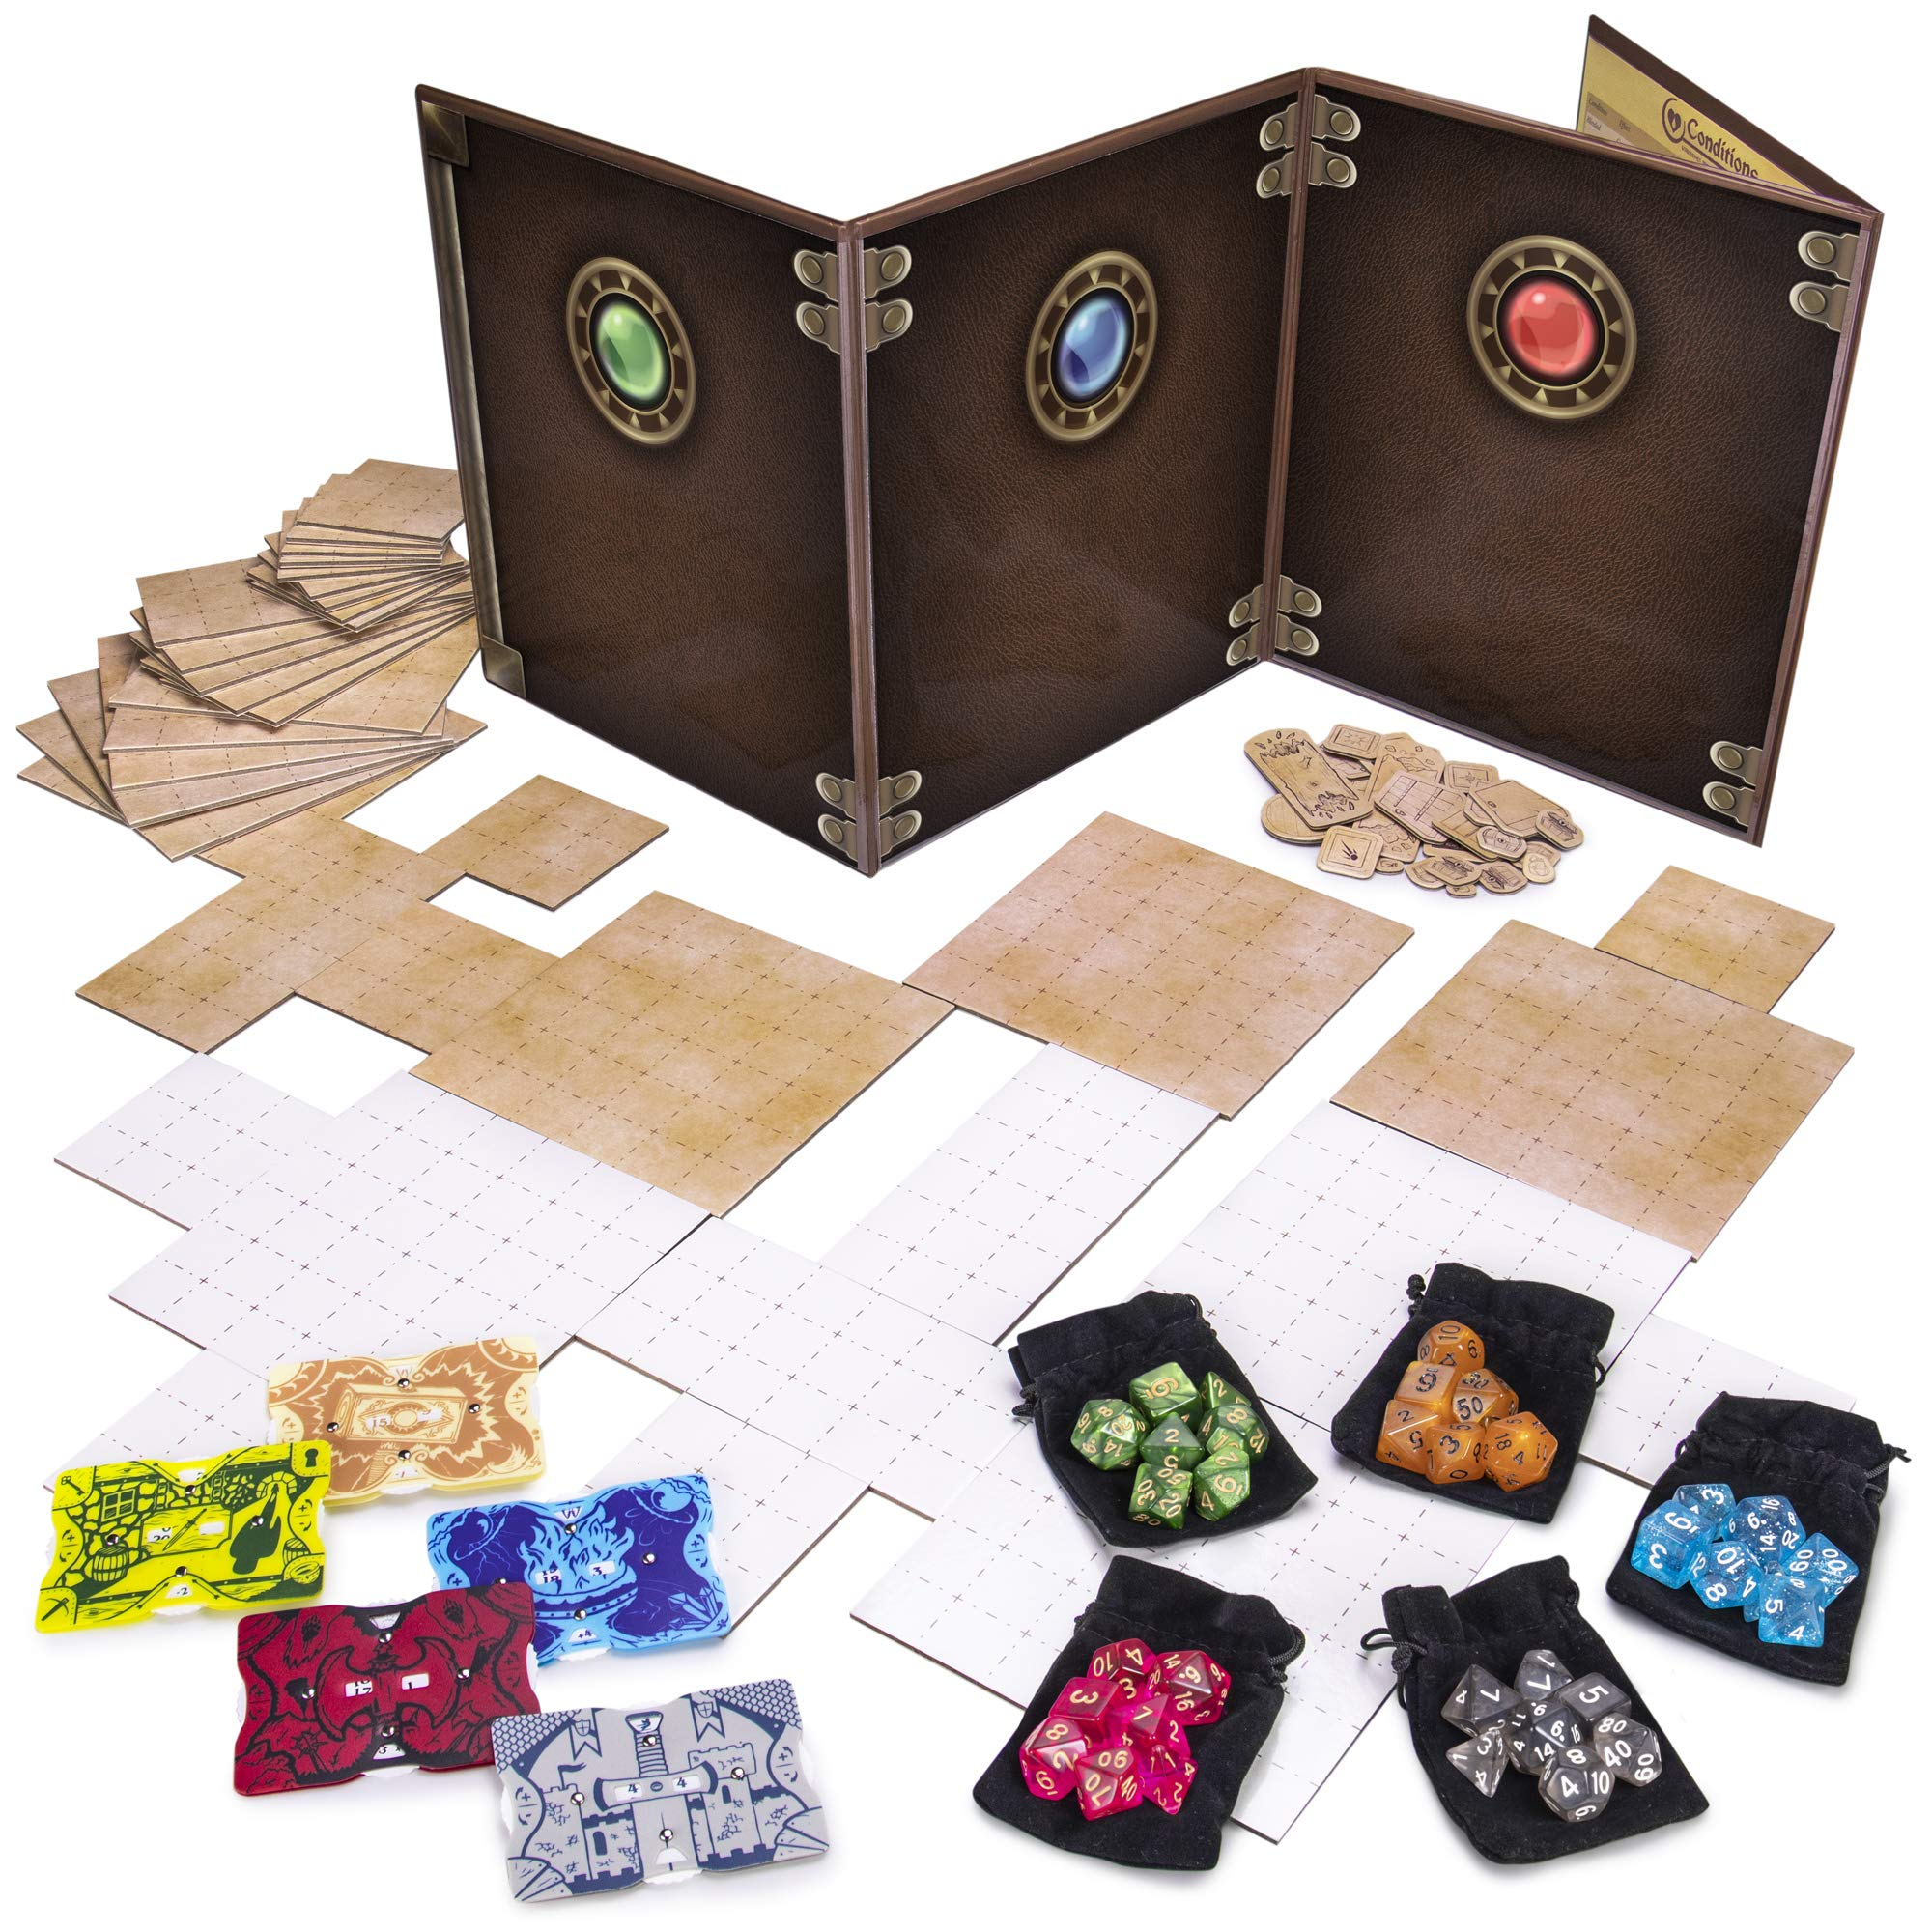 Dungeon Master Essentials: Roleplaying Starter Kit | Customizable GM Screen, 44 Reversible Map Tiles, 5 Character Health Trackers, 5 Polyhedral Dice Sets | Tabletop Fantasy Game Beginner Accessories by Stratagem (Image #1)